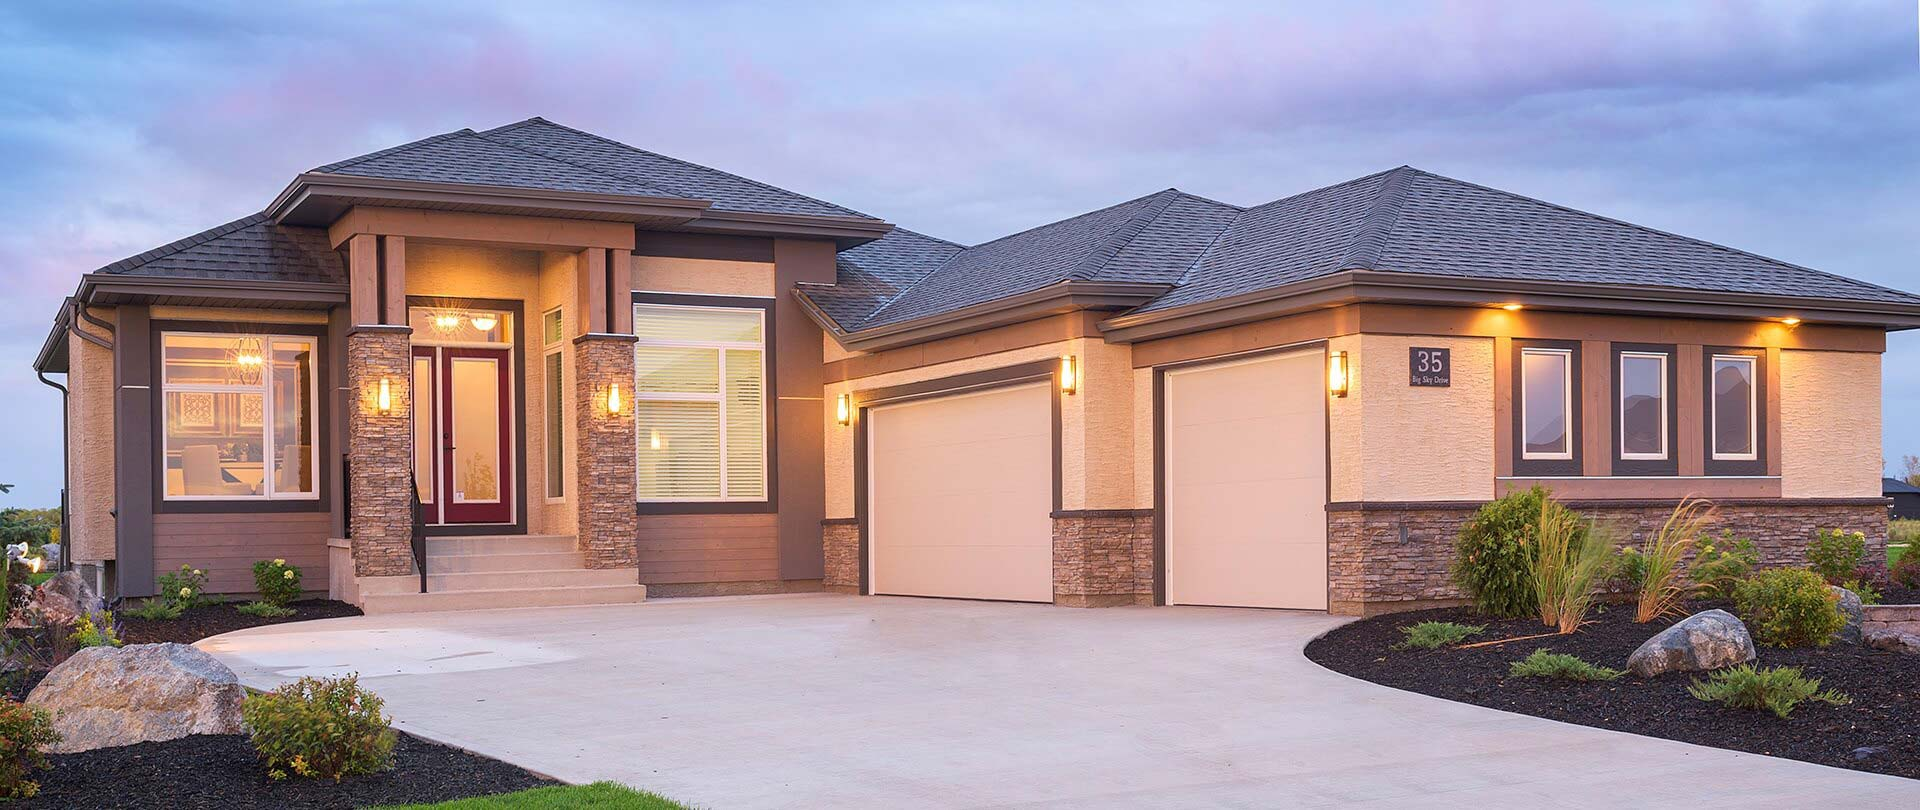 New Homes in Oak Bluff West - Qualico Communities Winnipeg